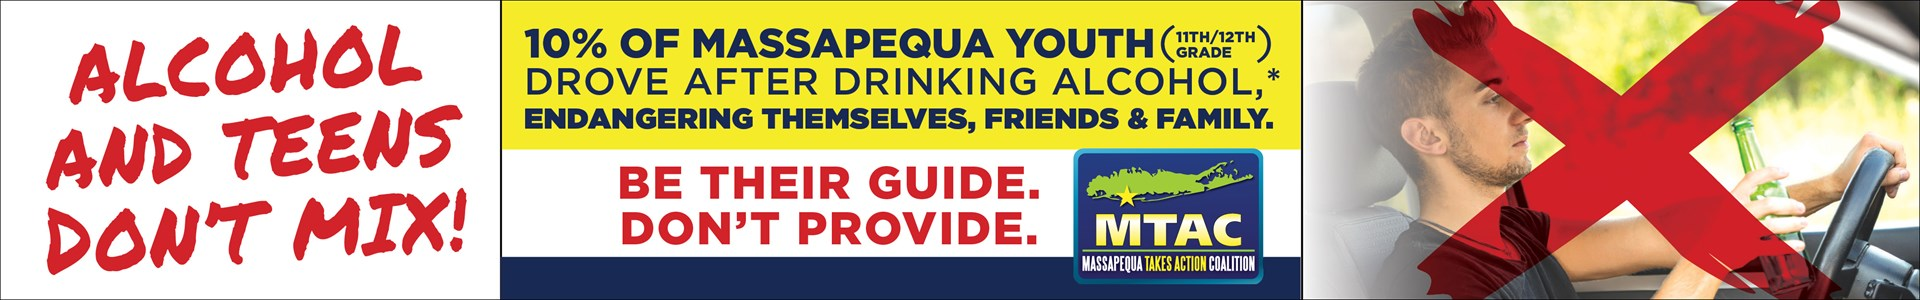 Massapequa Takes Action - Alcohol and The Law